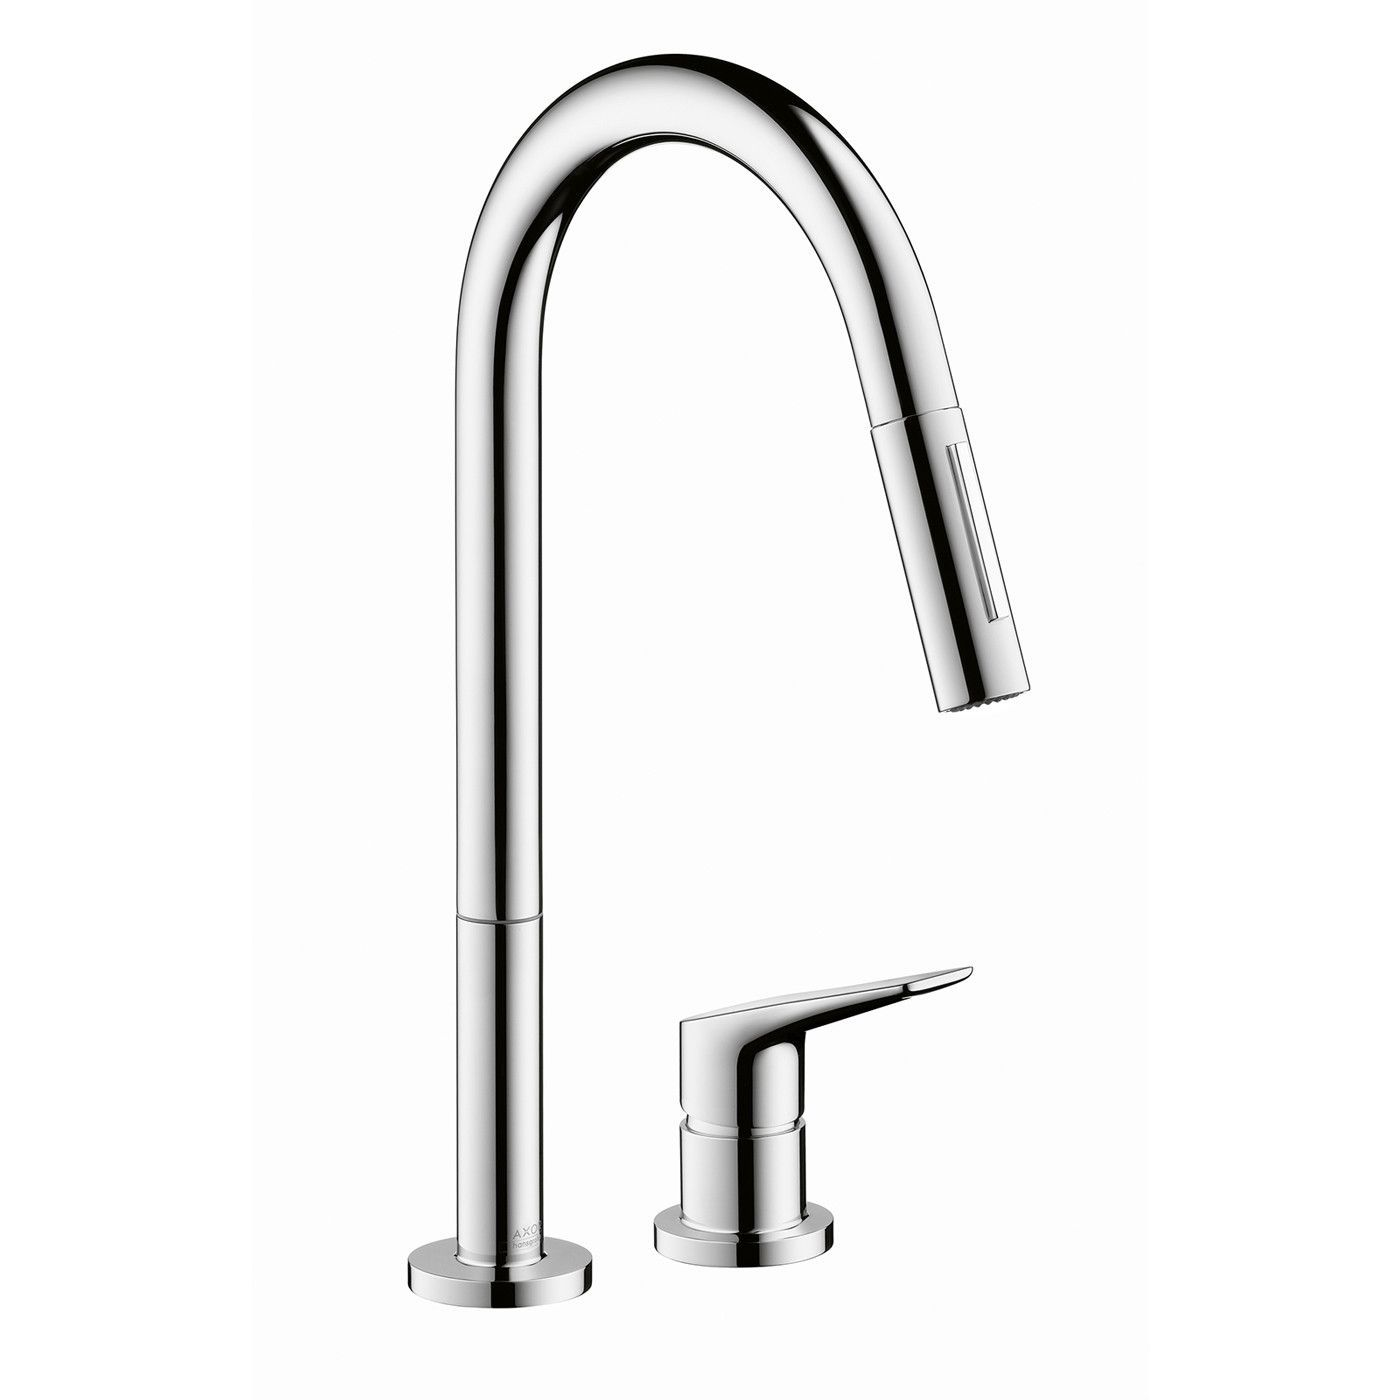 Hansgrohe 34822001 Chrome Axor Citterio M Pull-Down Kitchen Faucet ...